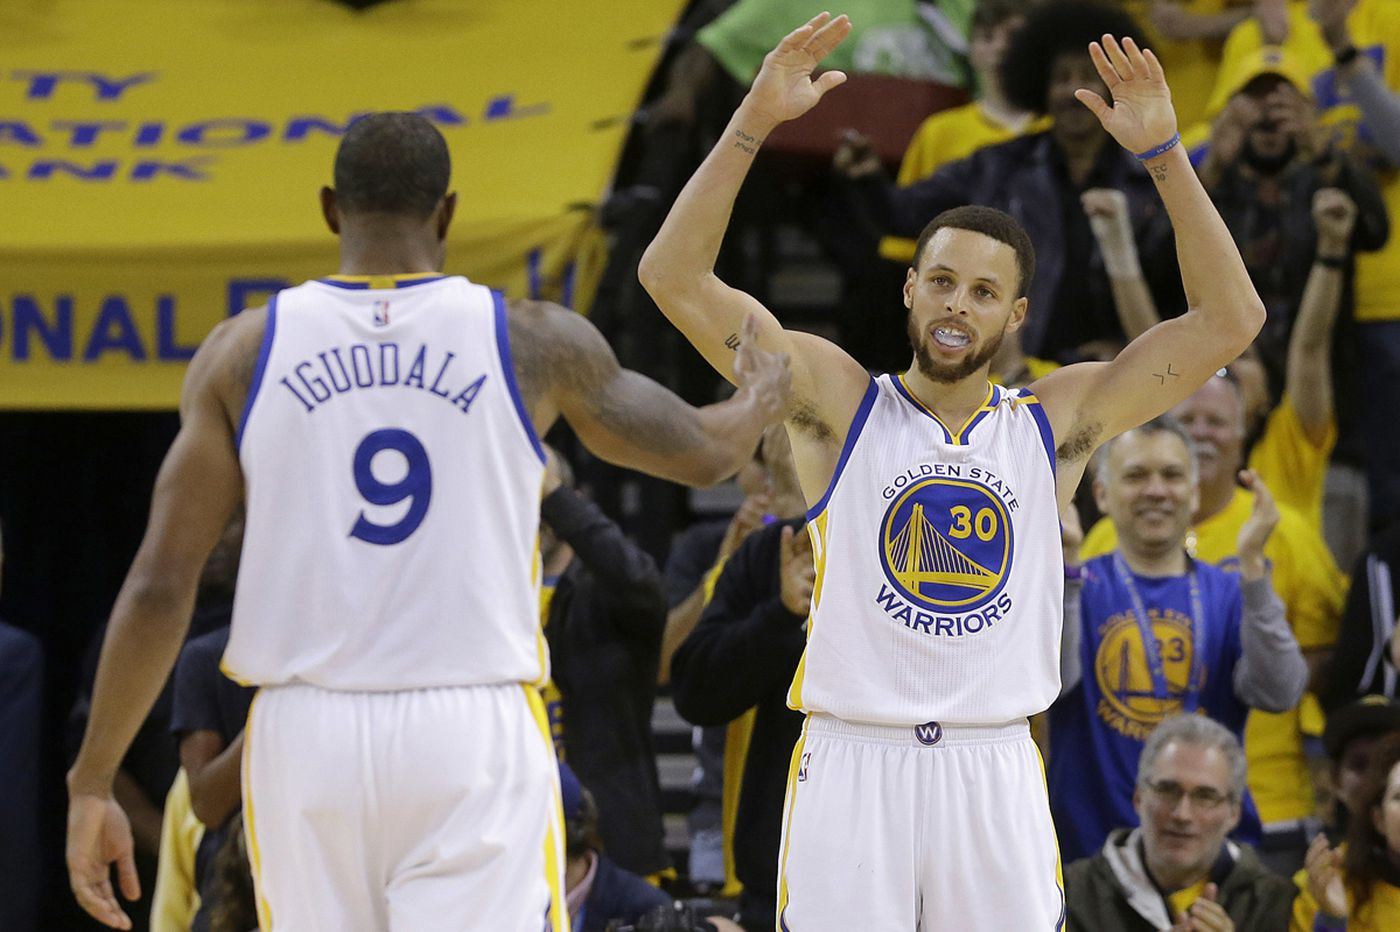 NASA offers to show NBA superstar Steph Curry evidence of moon landings